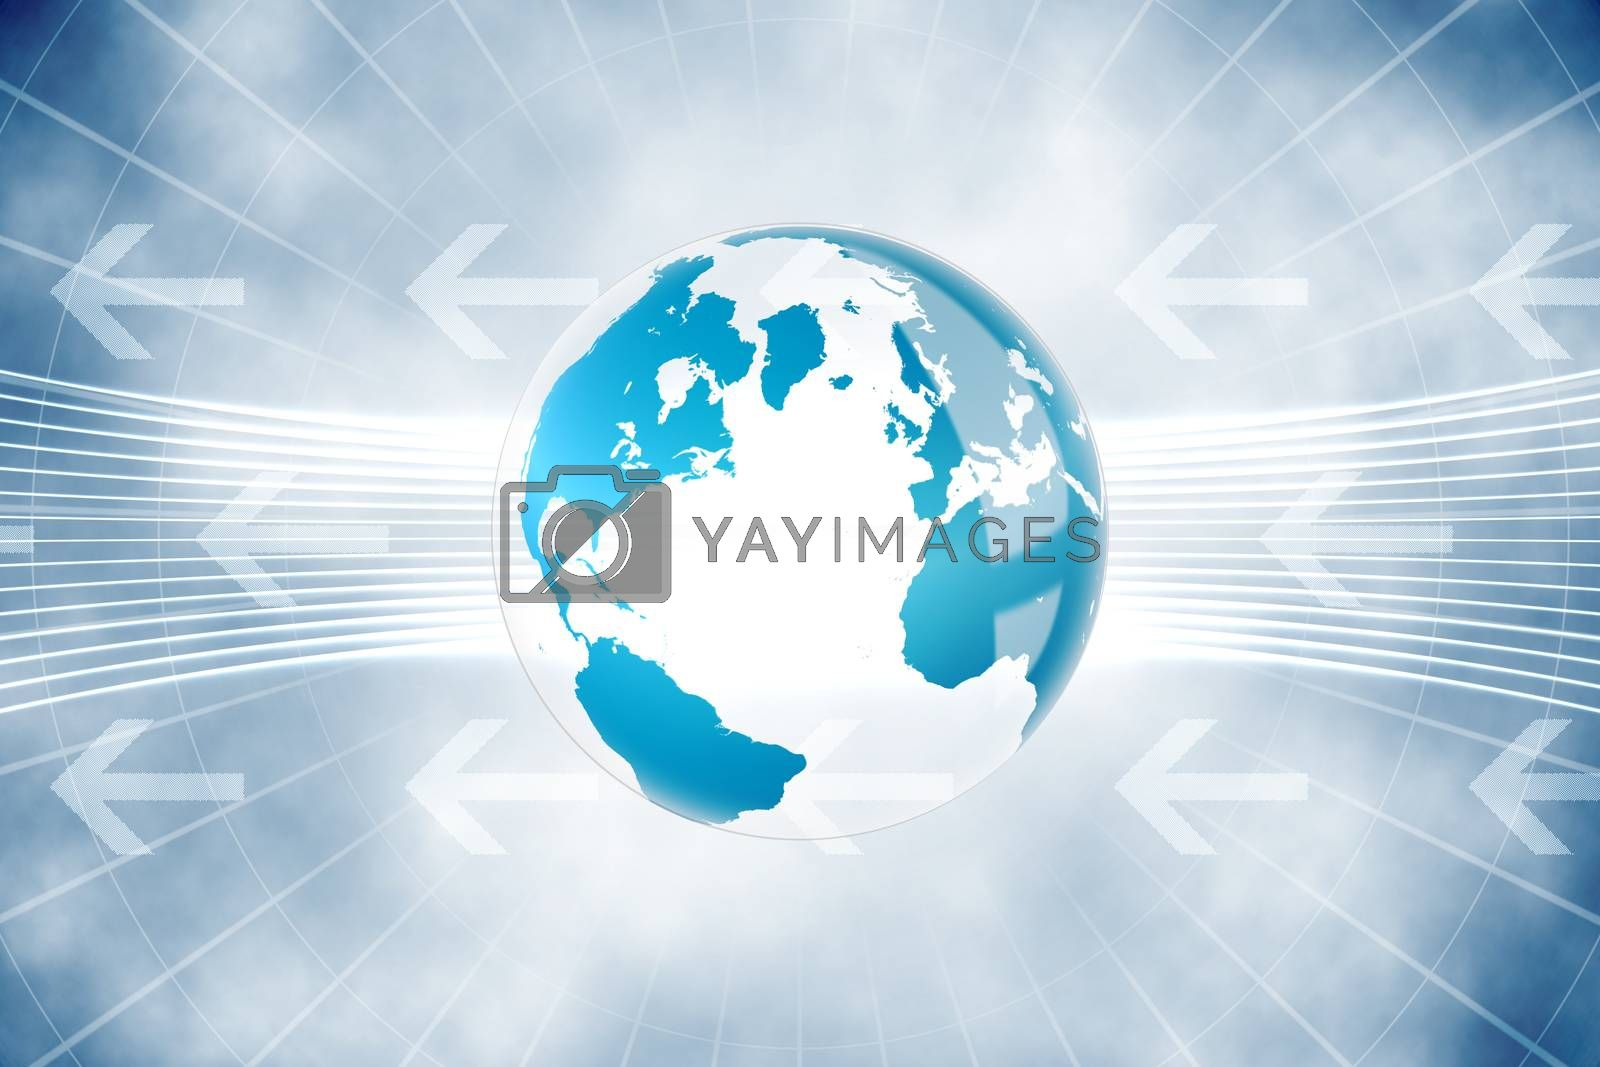 Royalty free image of Global business graphic in blue by Wavebreakmedia